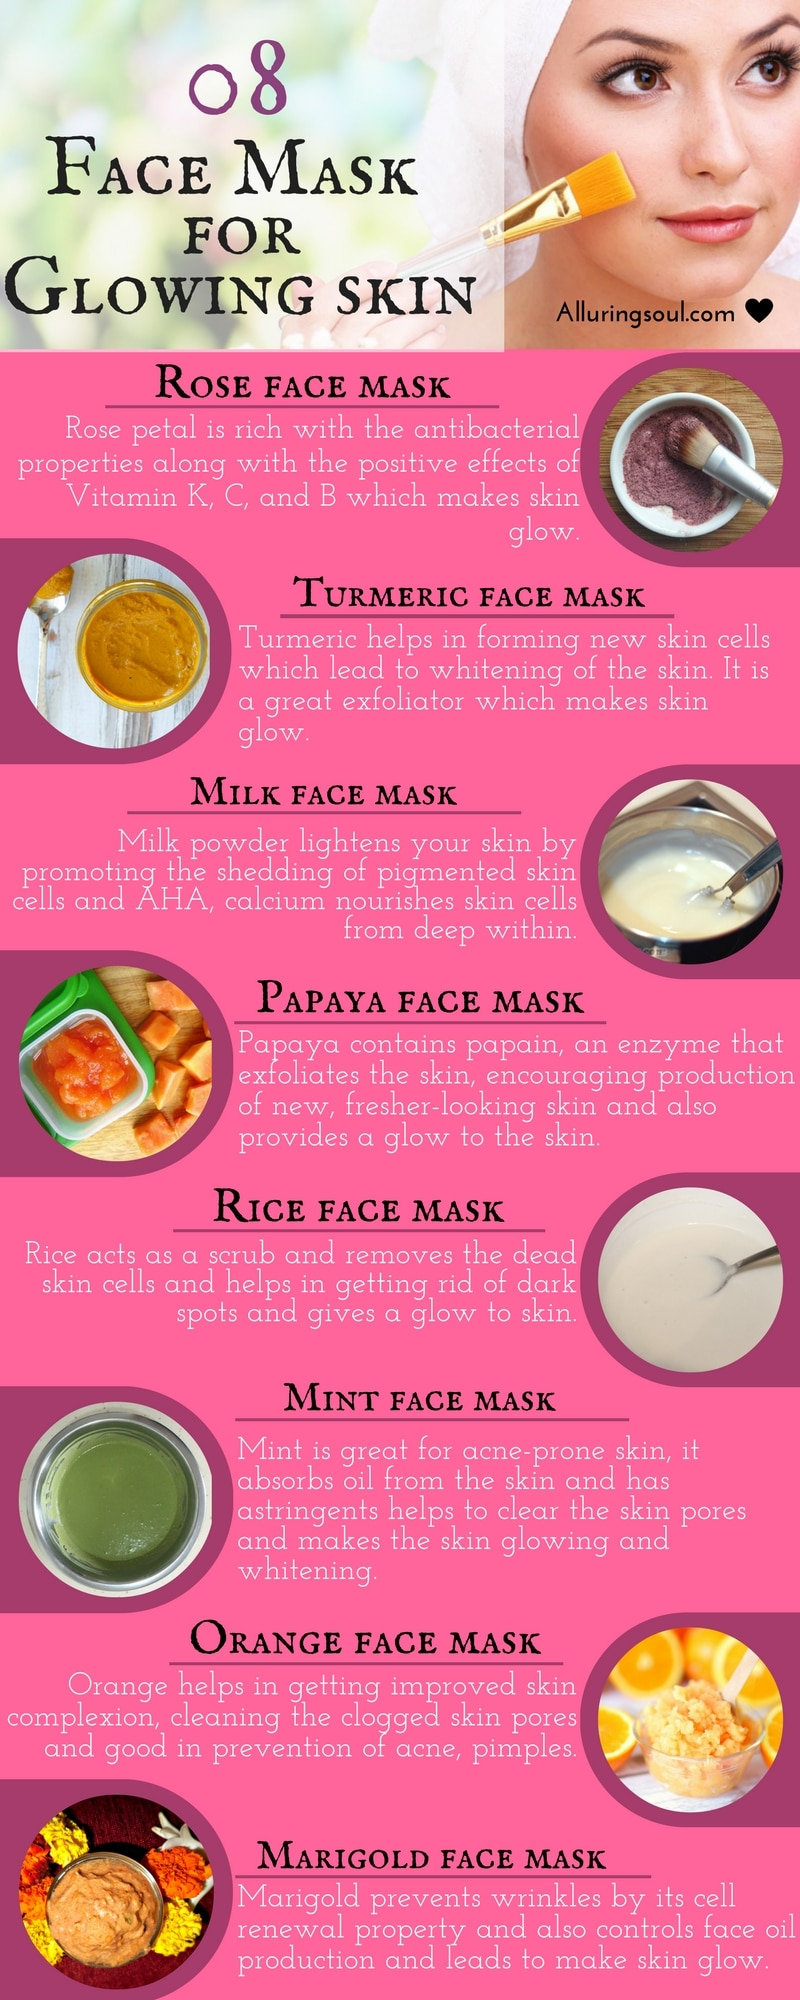 Face mask for glowing skin 2